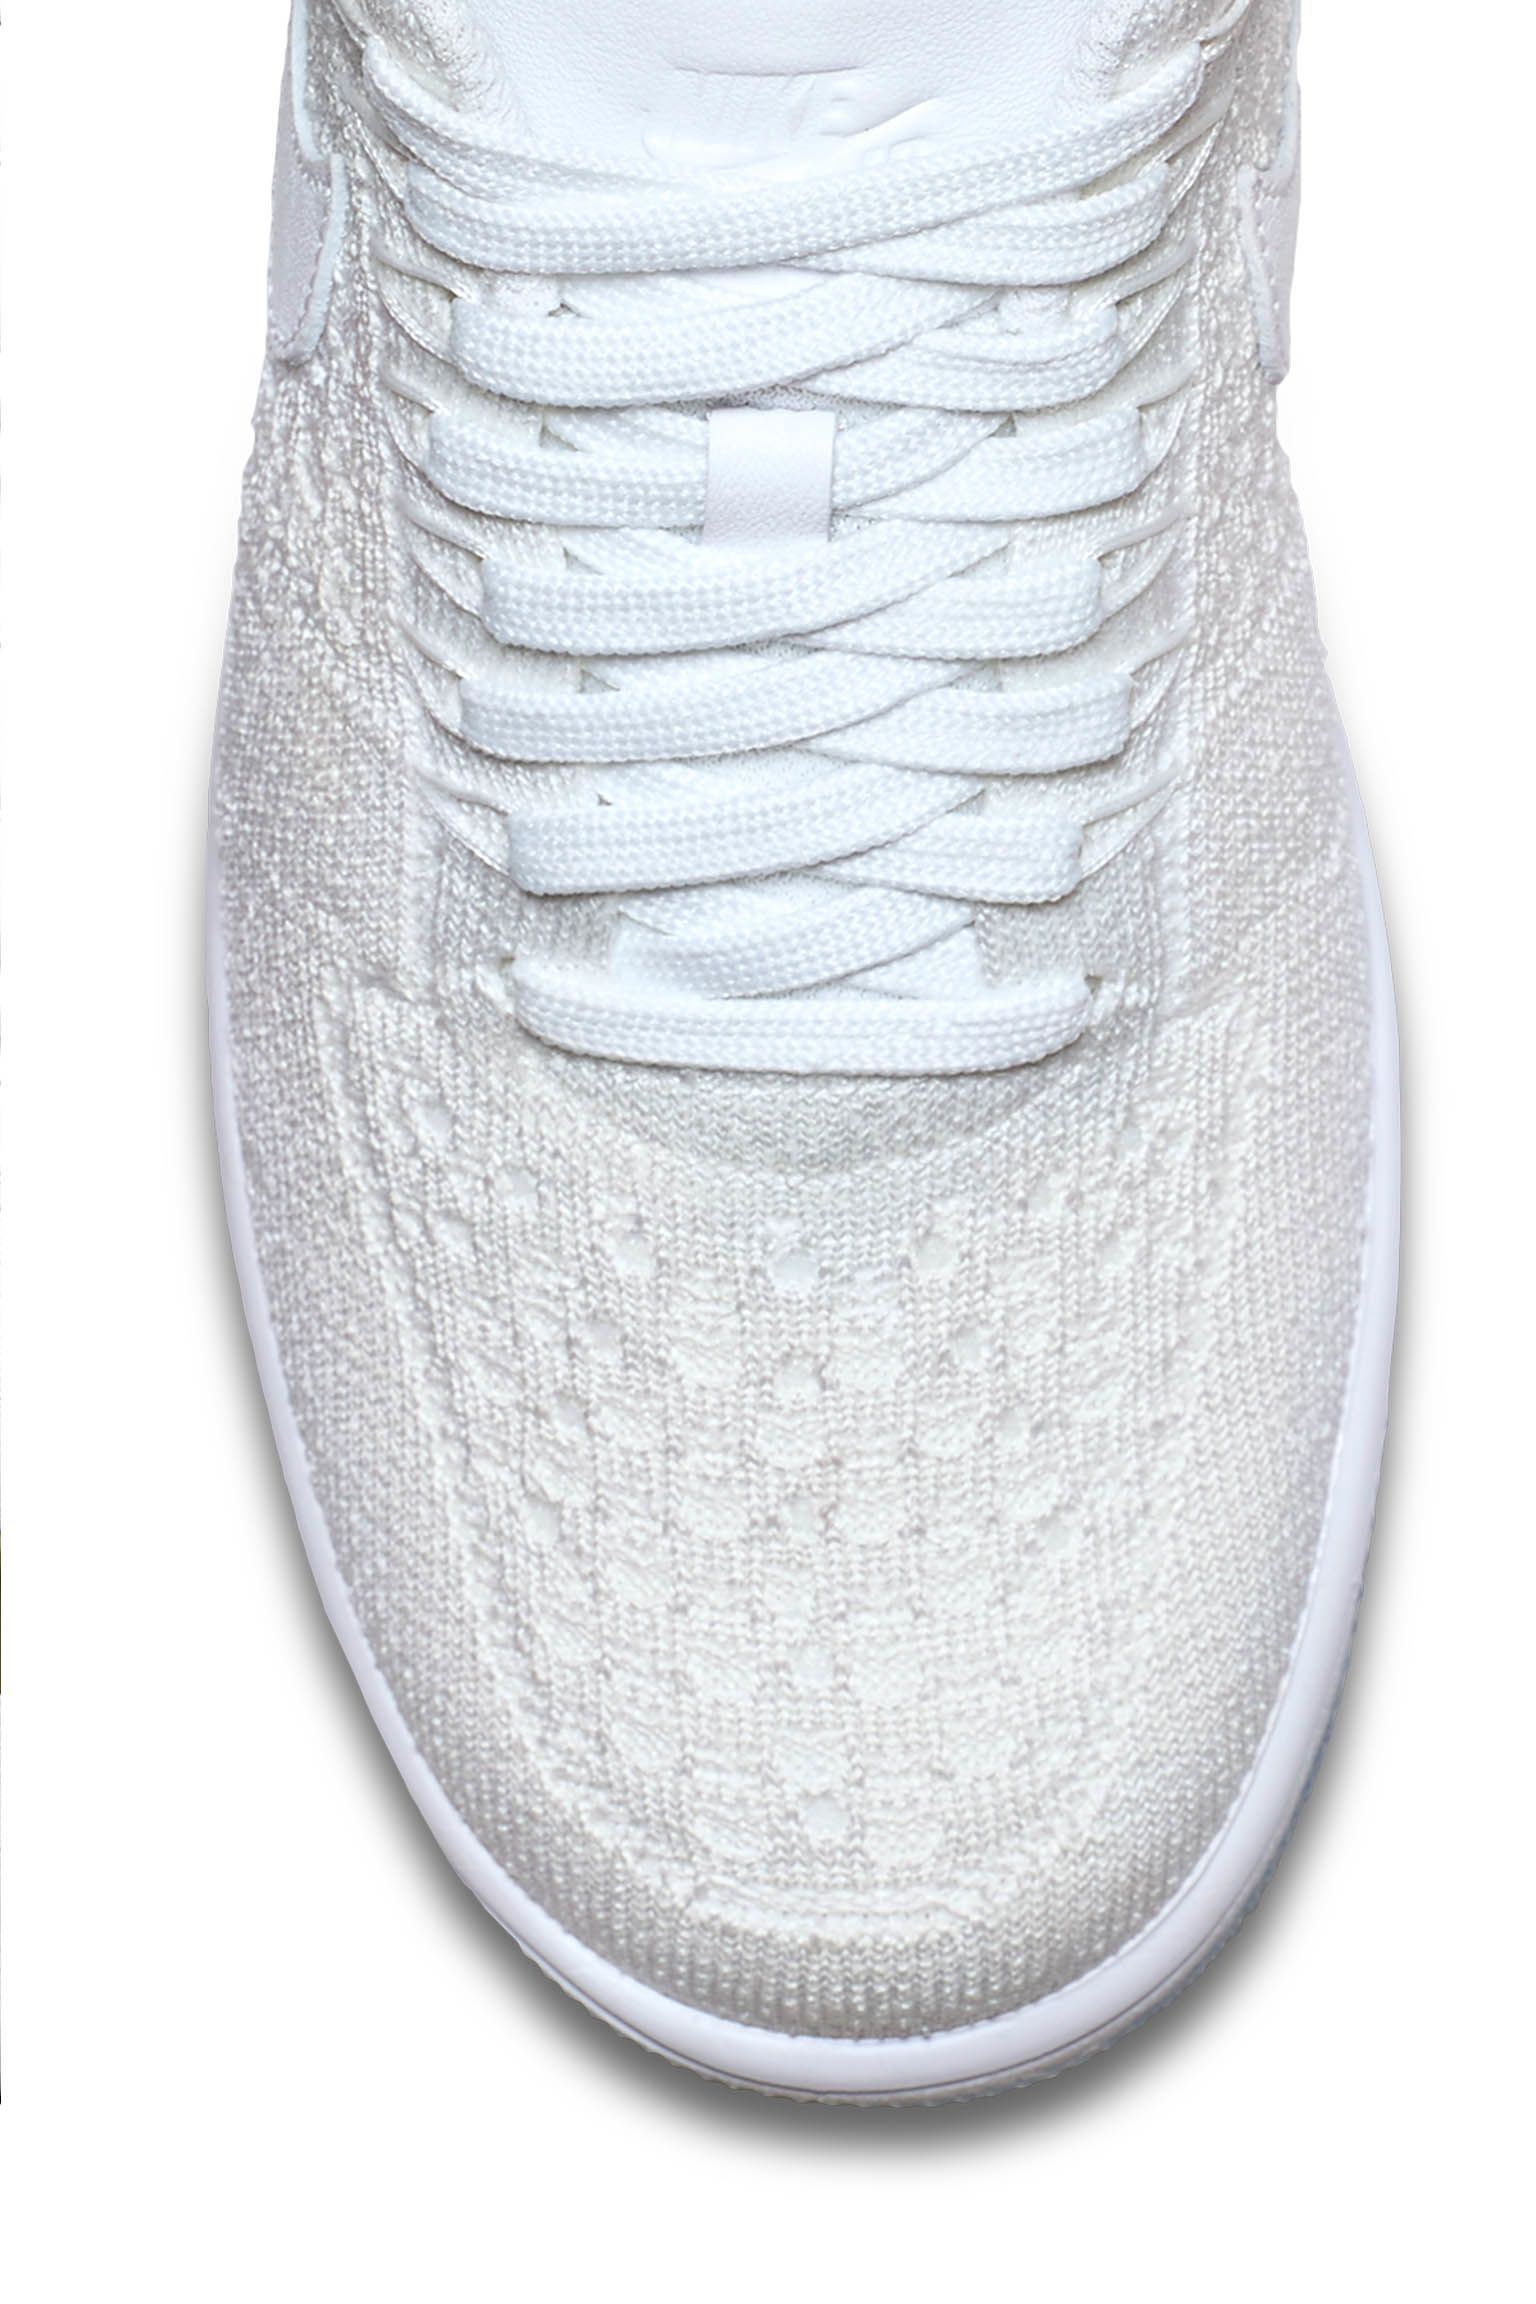 Women's Nike Air Force 1 Ultra Flyknit Low 'Triple White' Release Date